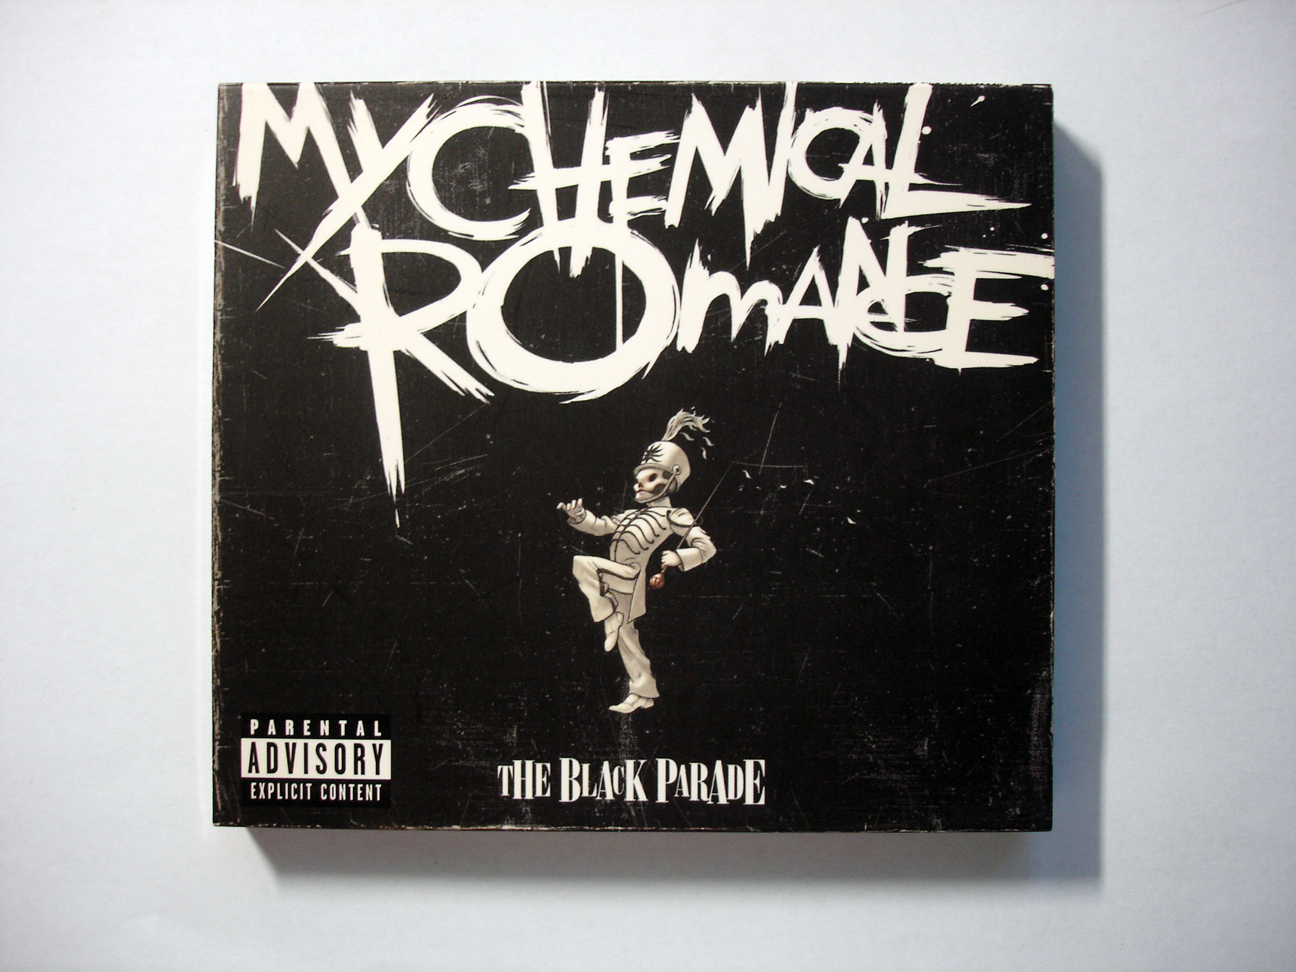 (album) The Black Parade (reissue) - ..